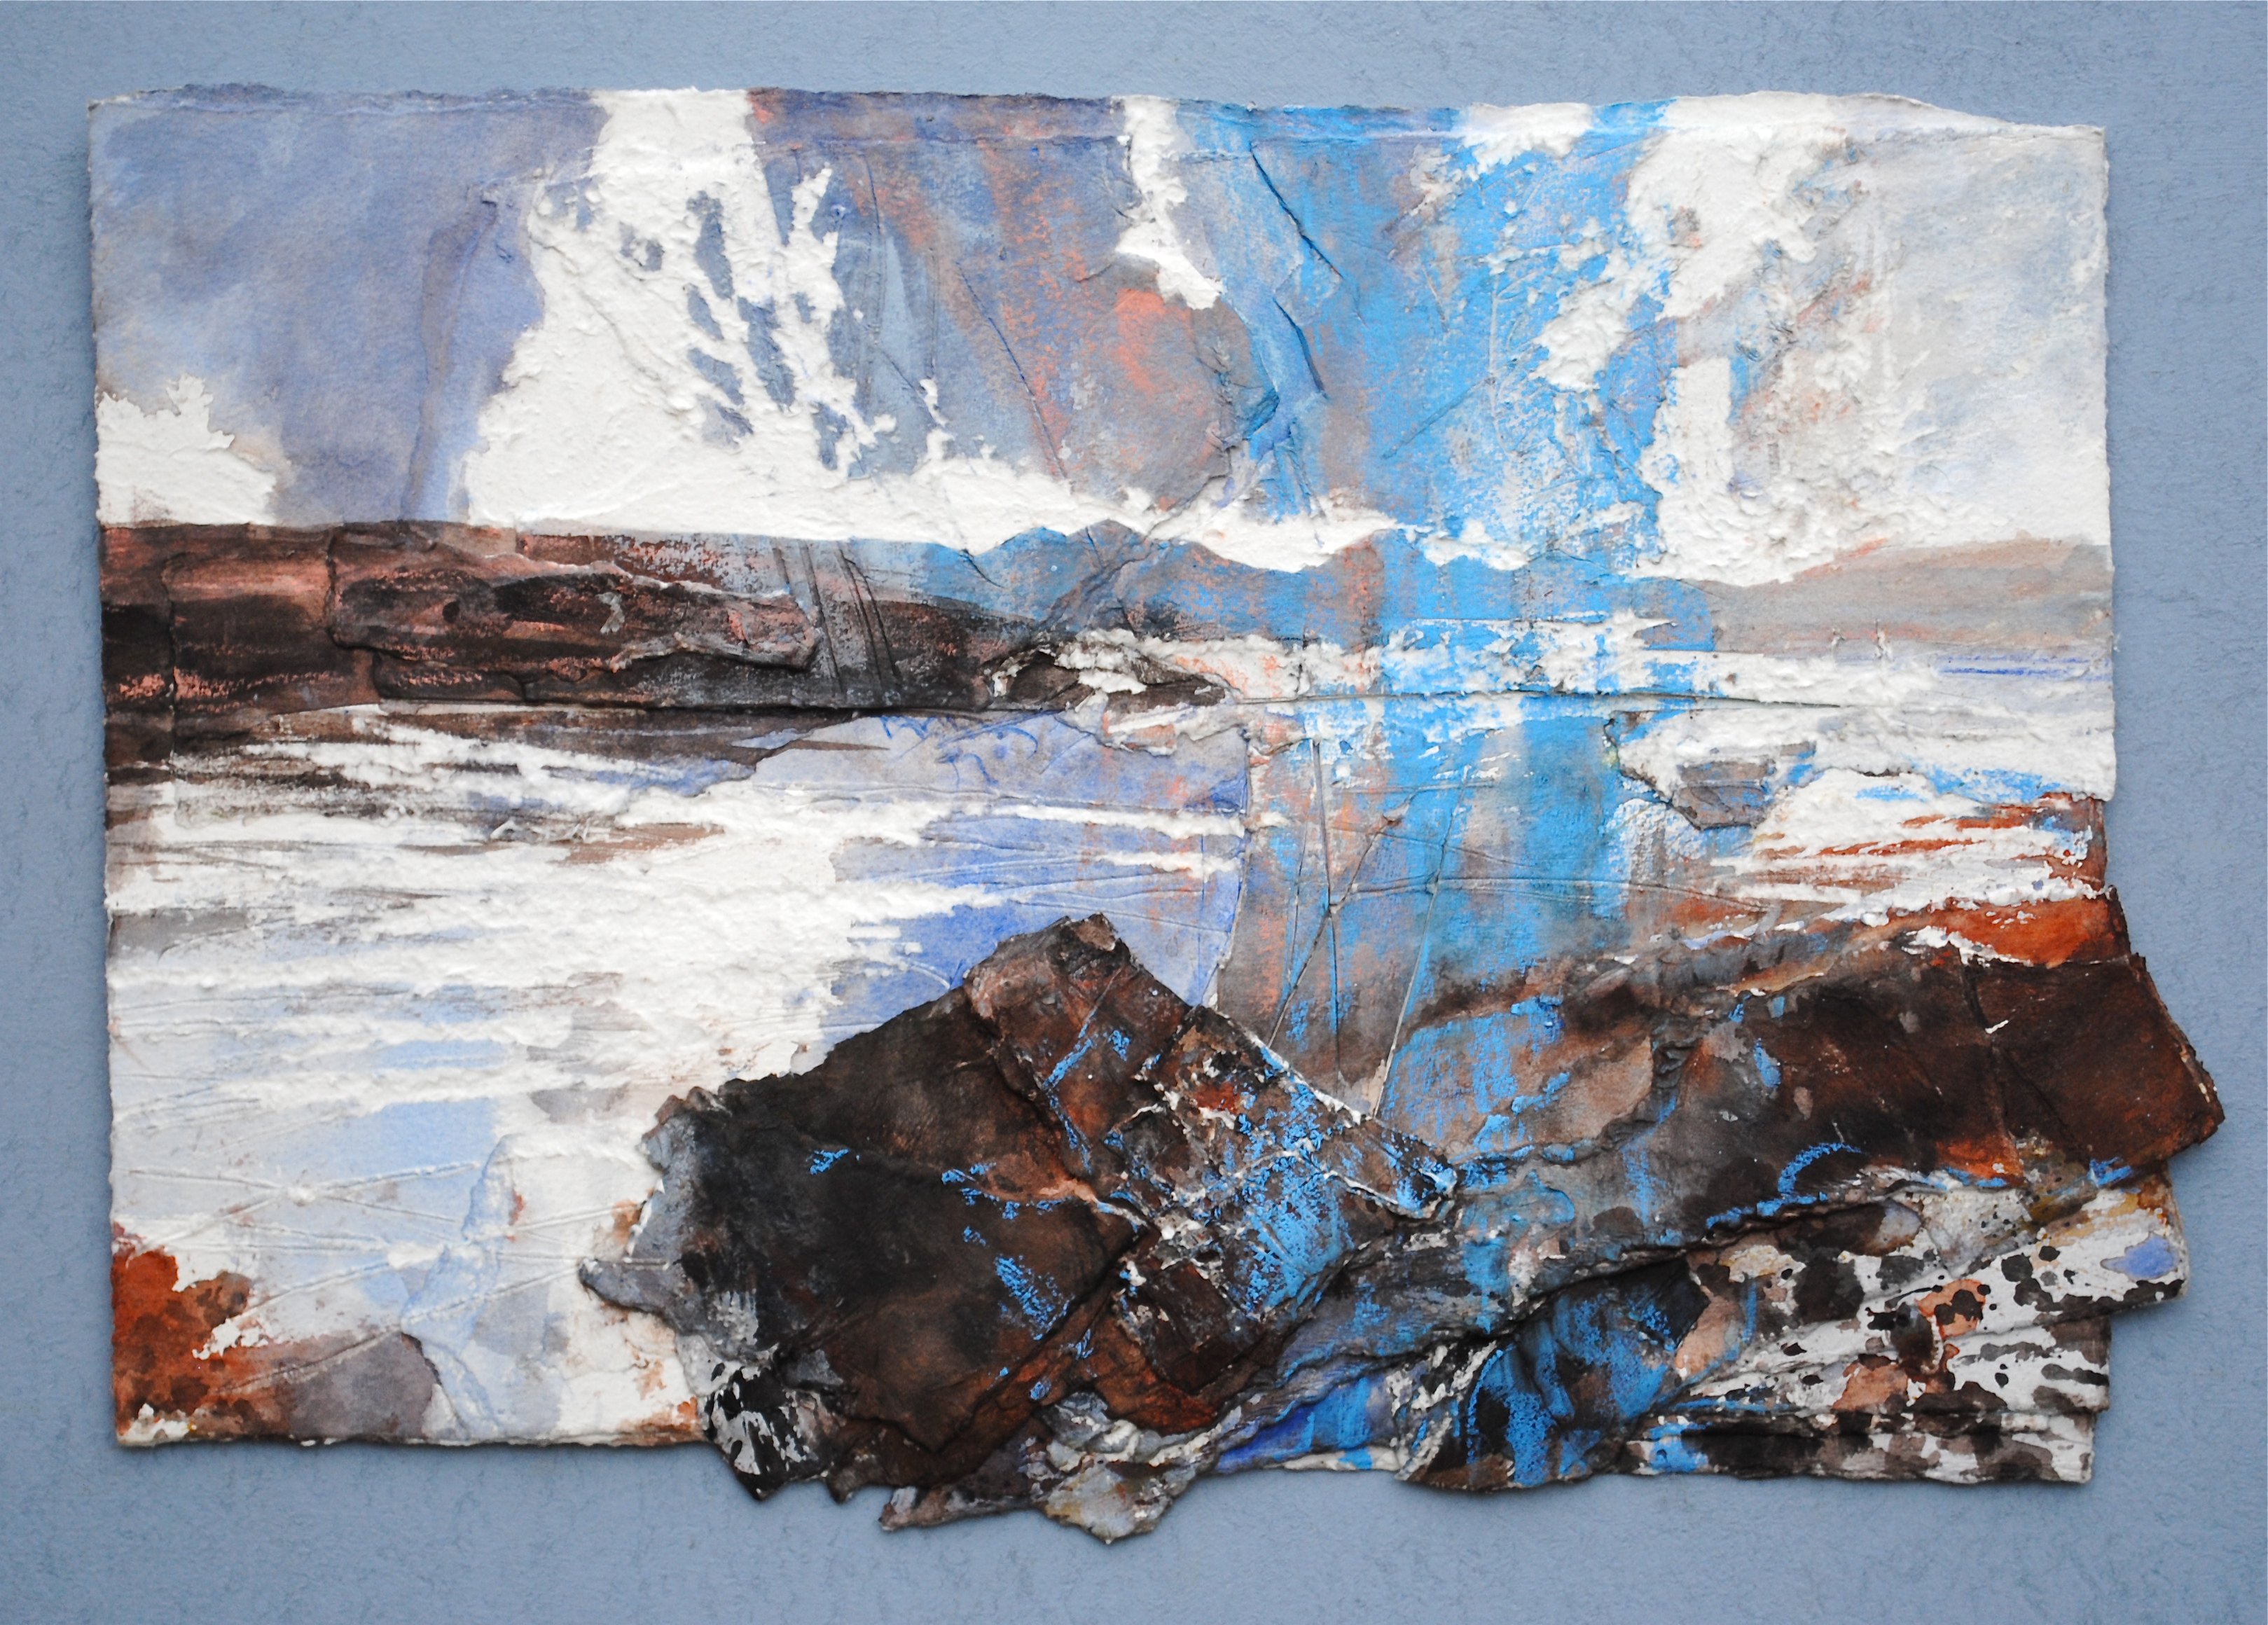 David-Tress-Distant-Skye-Loch-Kishorn-mixed-media-on-paper-36x52cm-2015